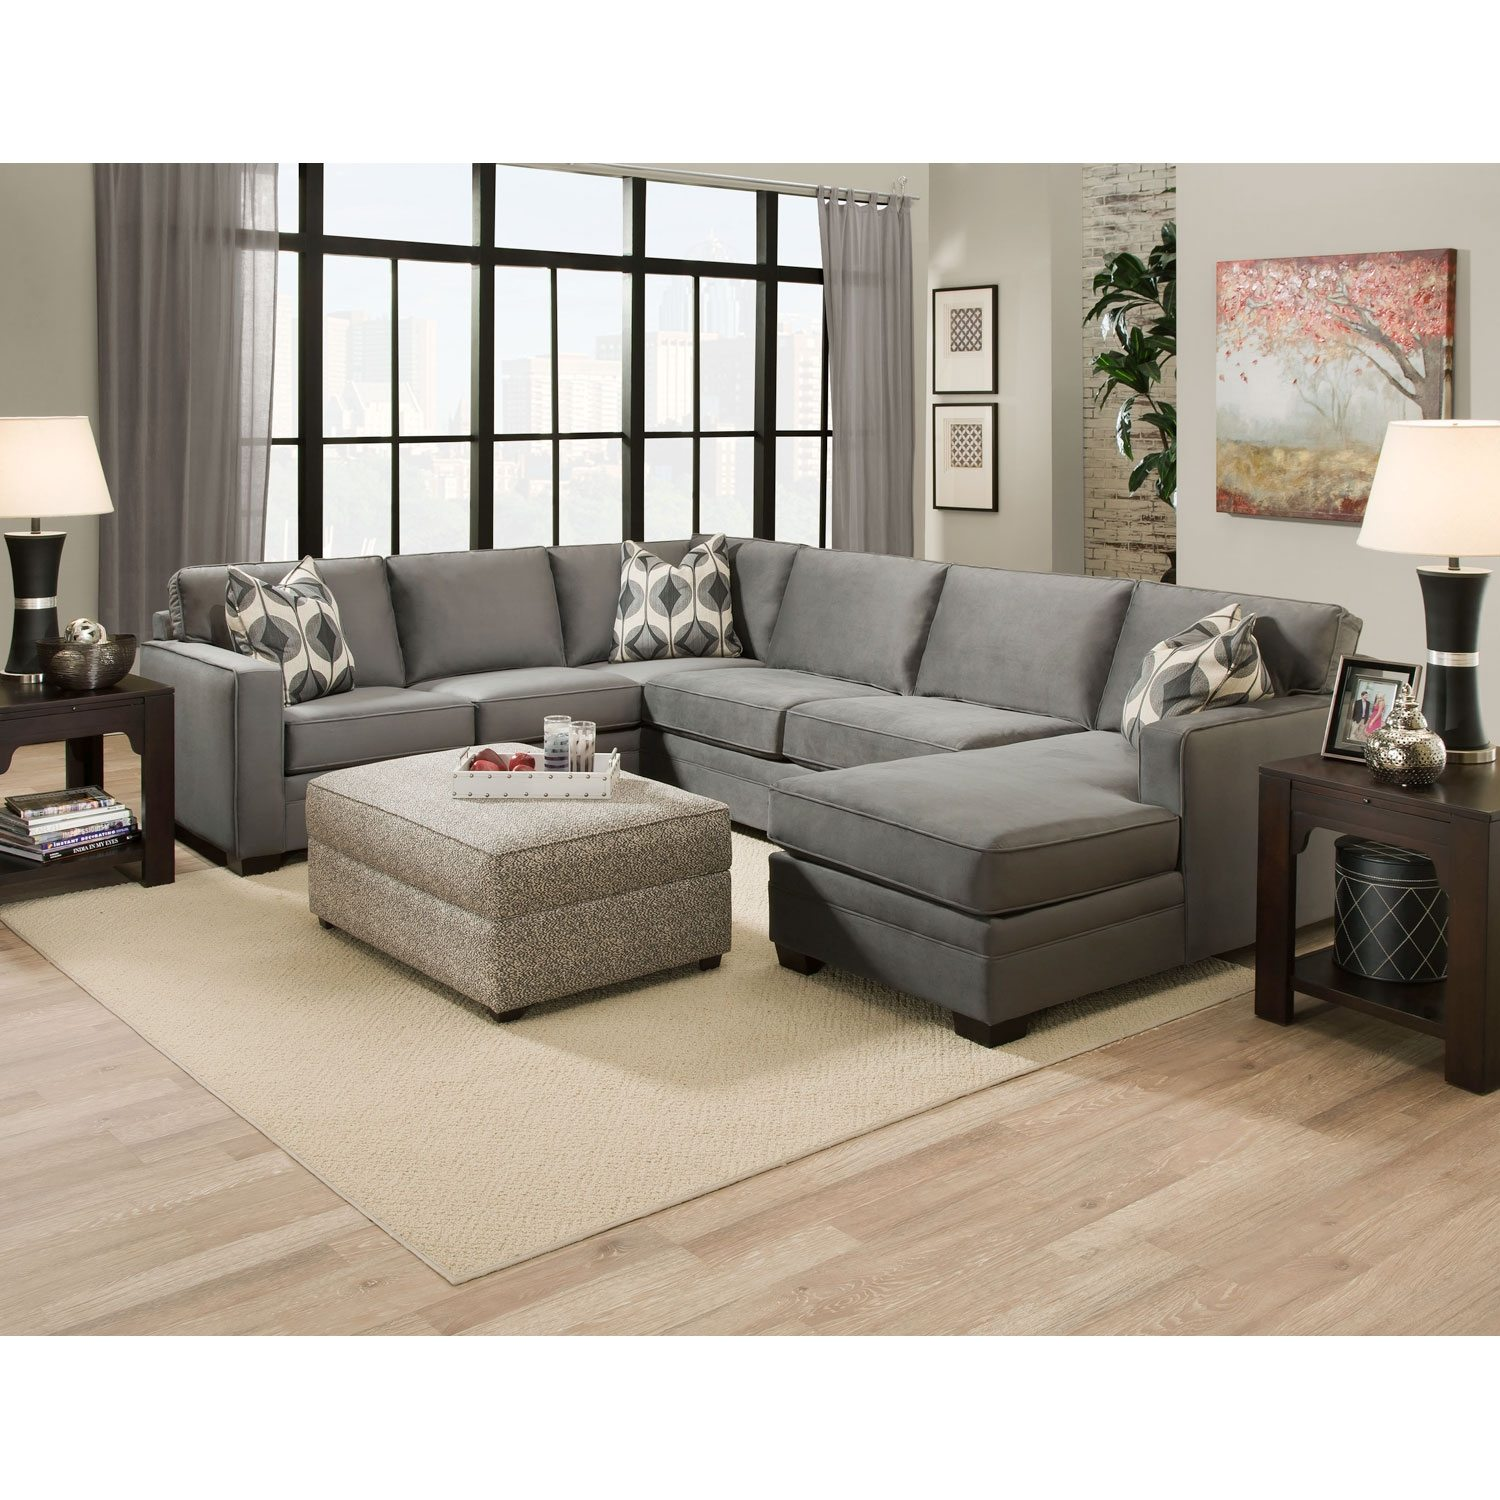 Furniture Large Sectional Sofas Large Deep Sectional Sofas